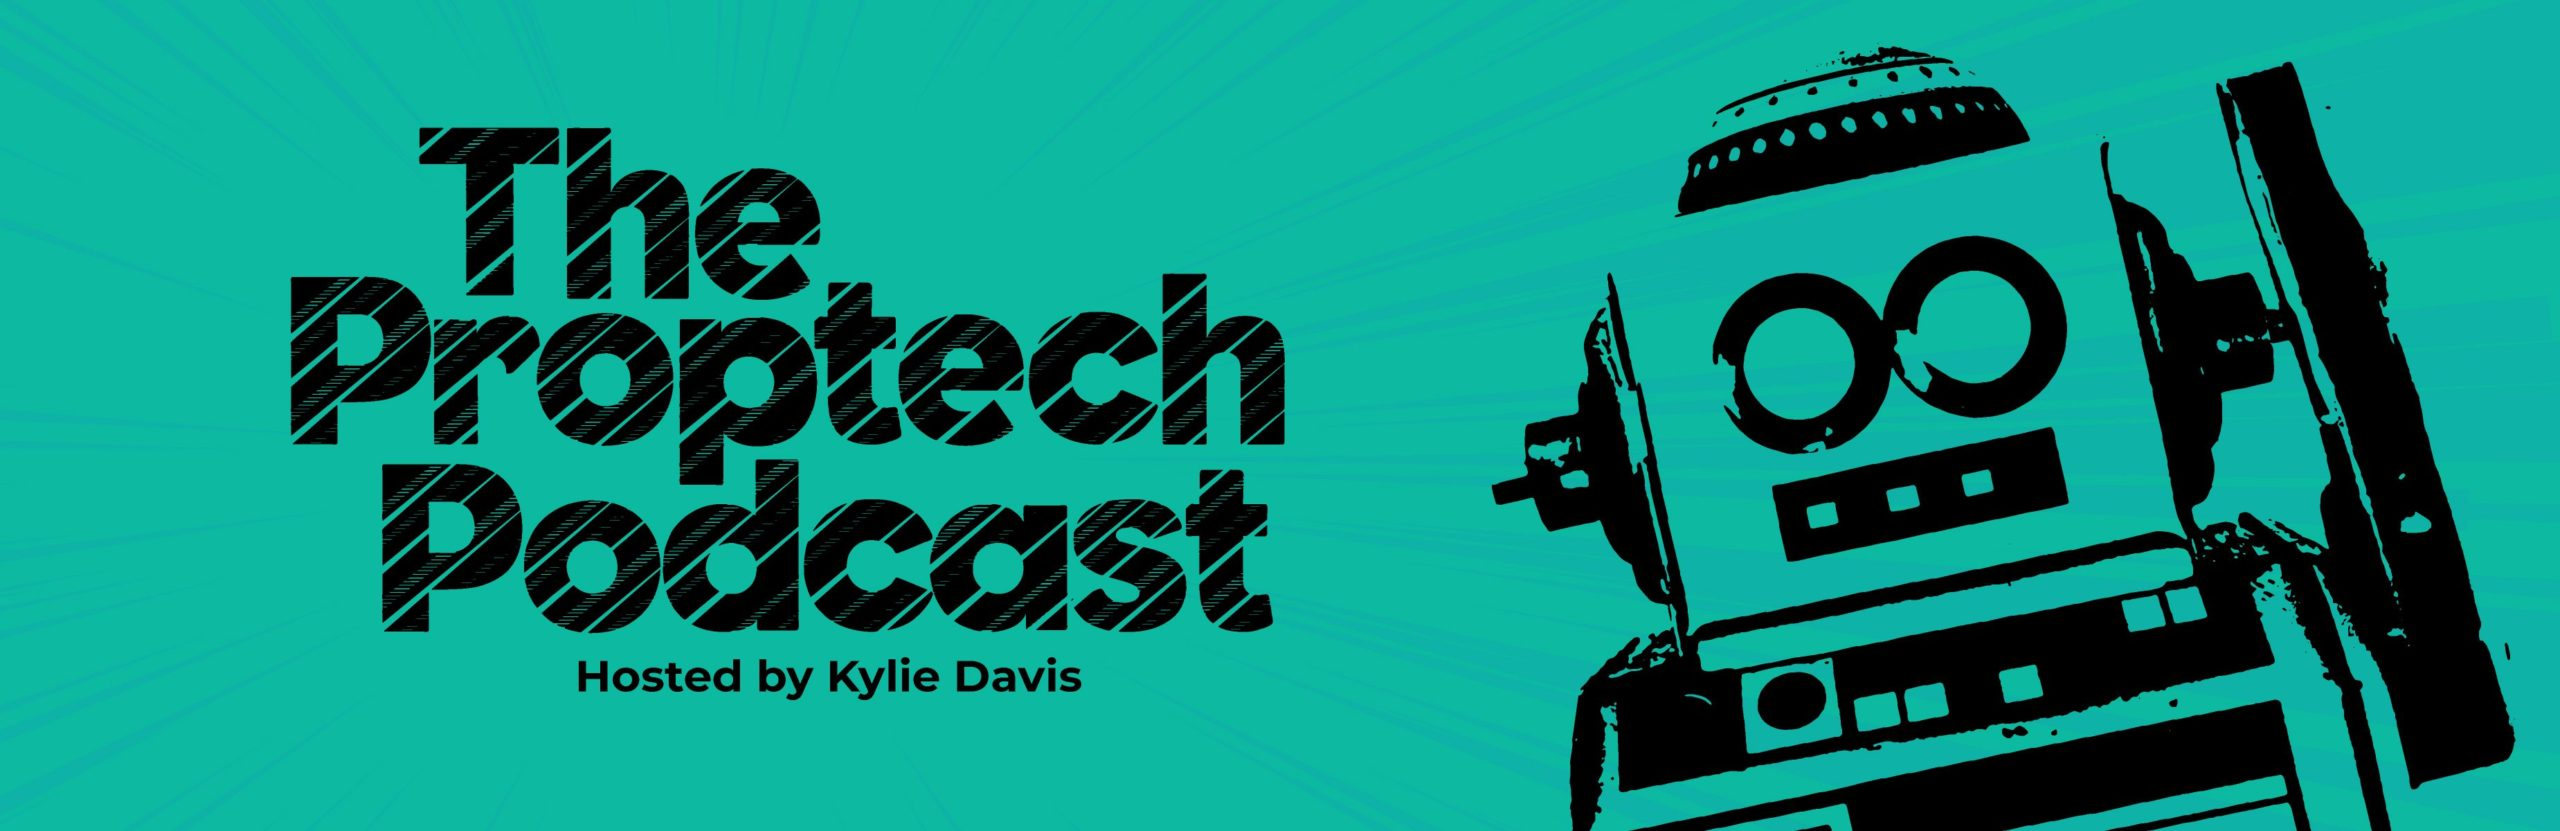 The PropTech Podcast